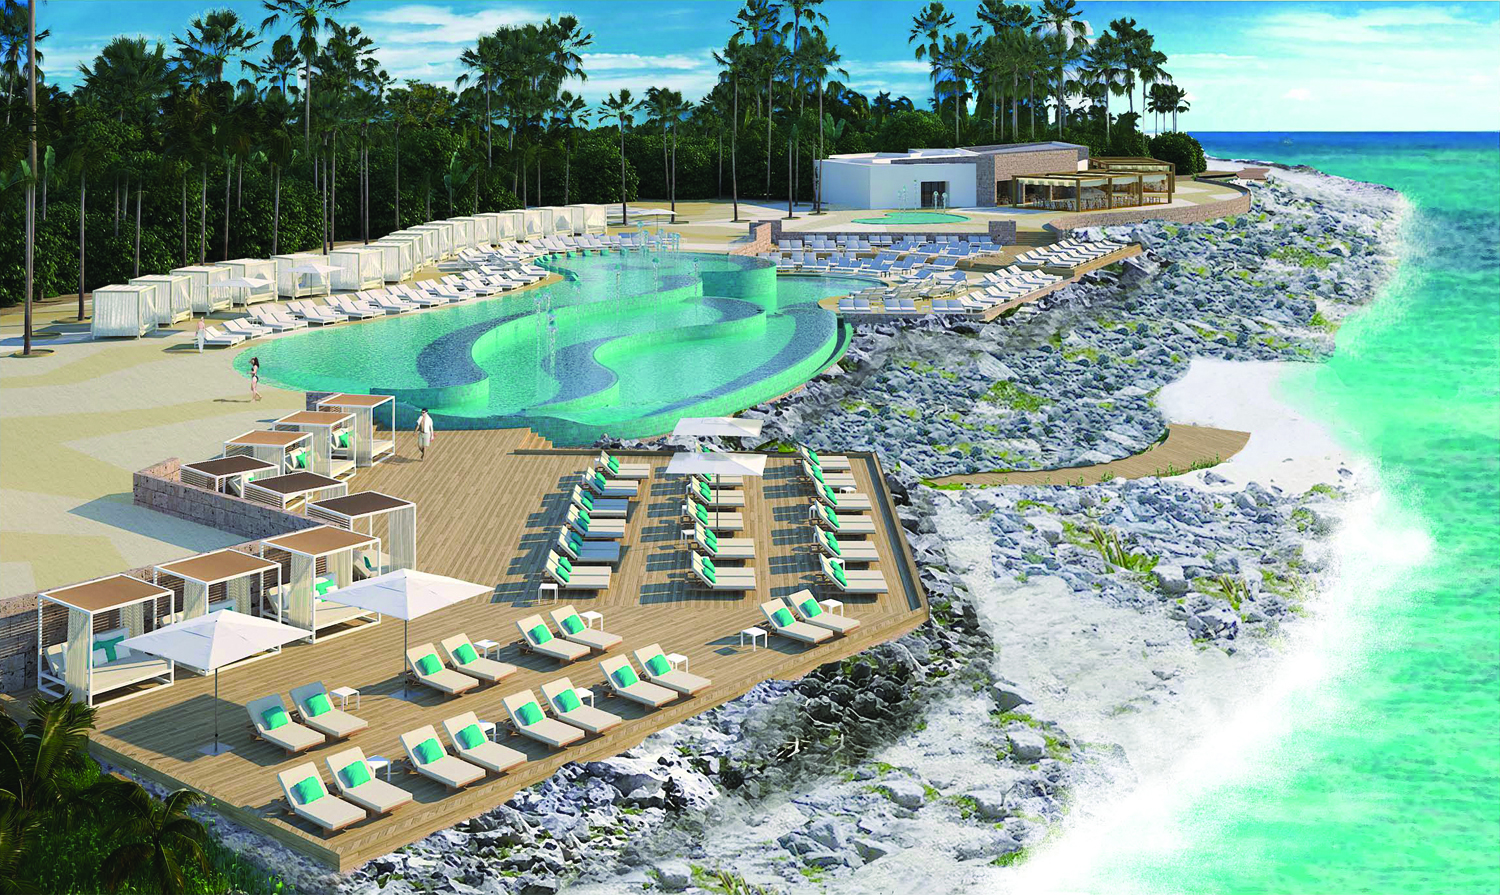 Rendering of the pool area at TRS Yucatan.